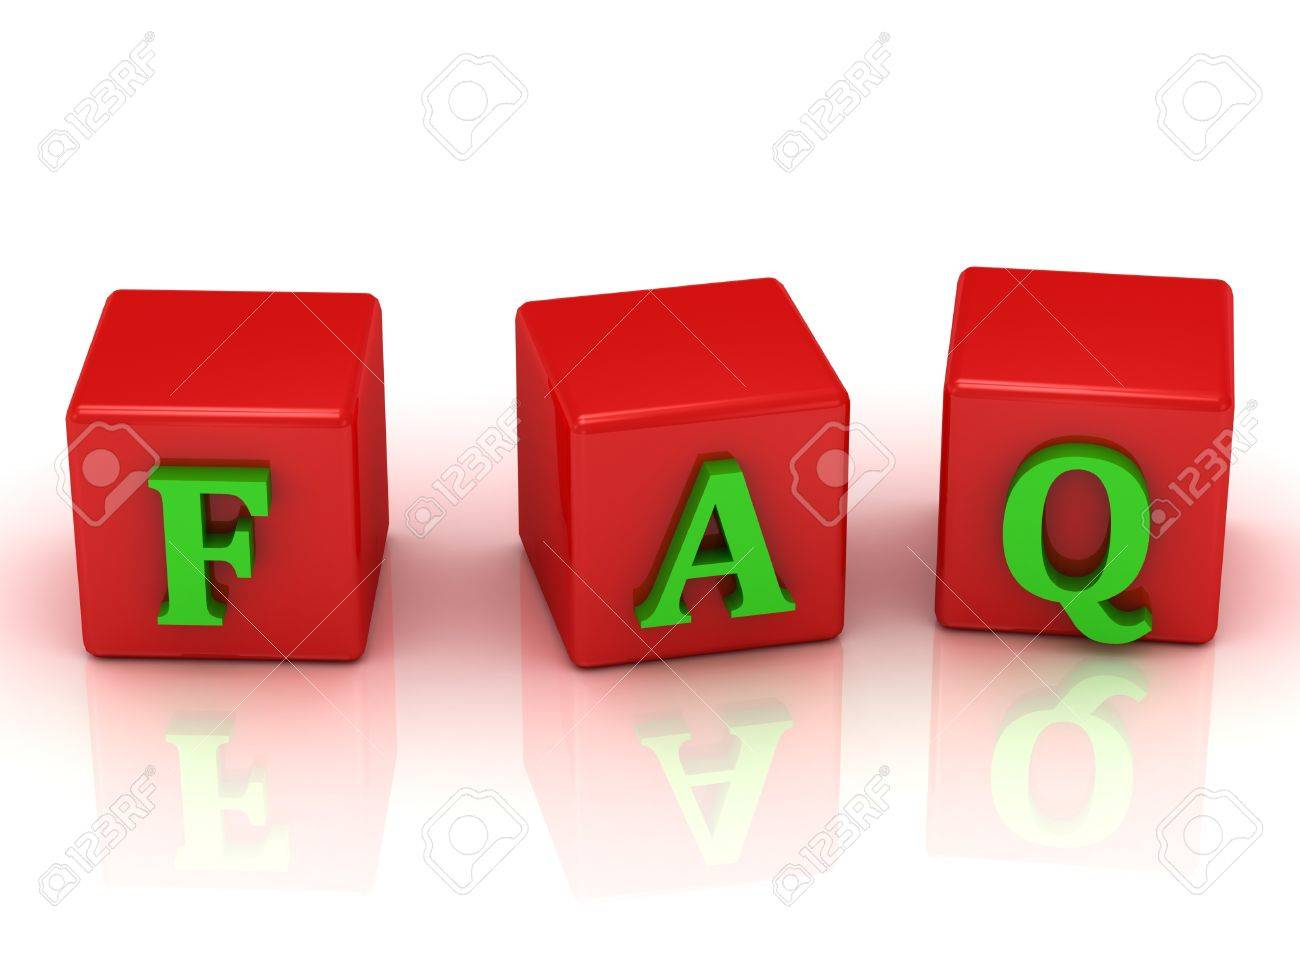 FAQ inscription green letters on bright red cubes Stock Photo - 18942225